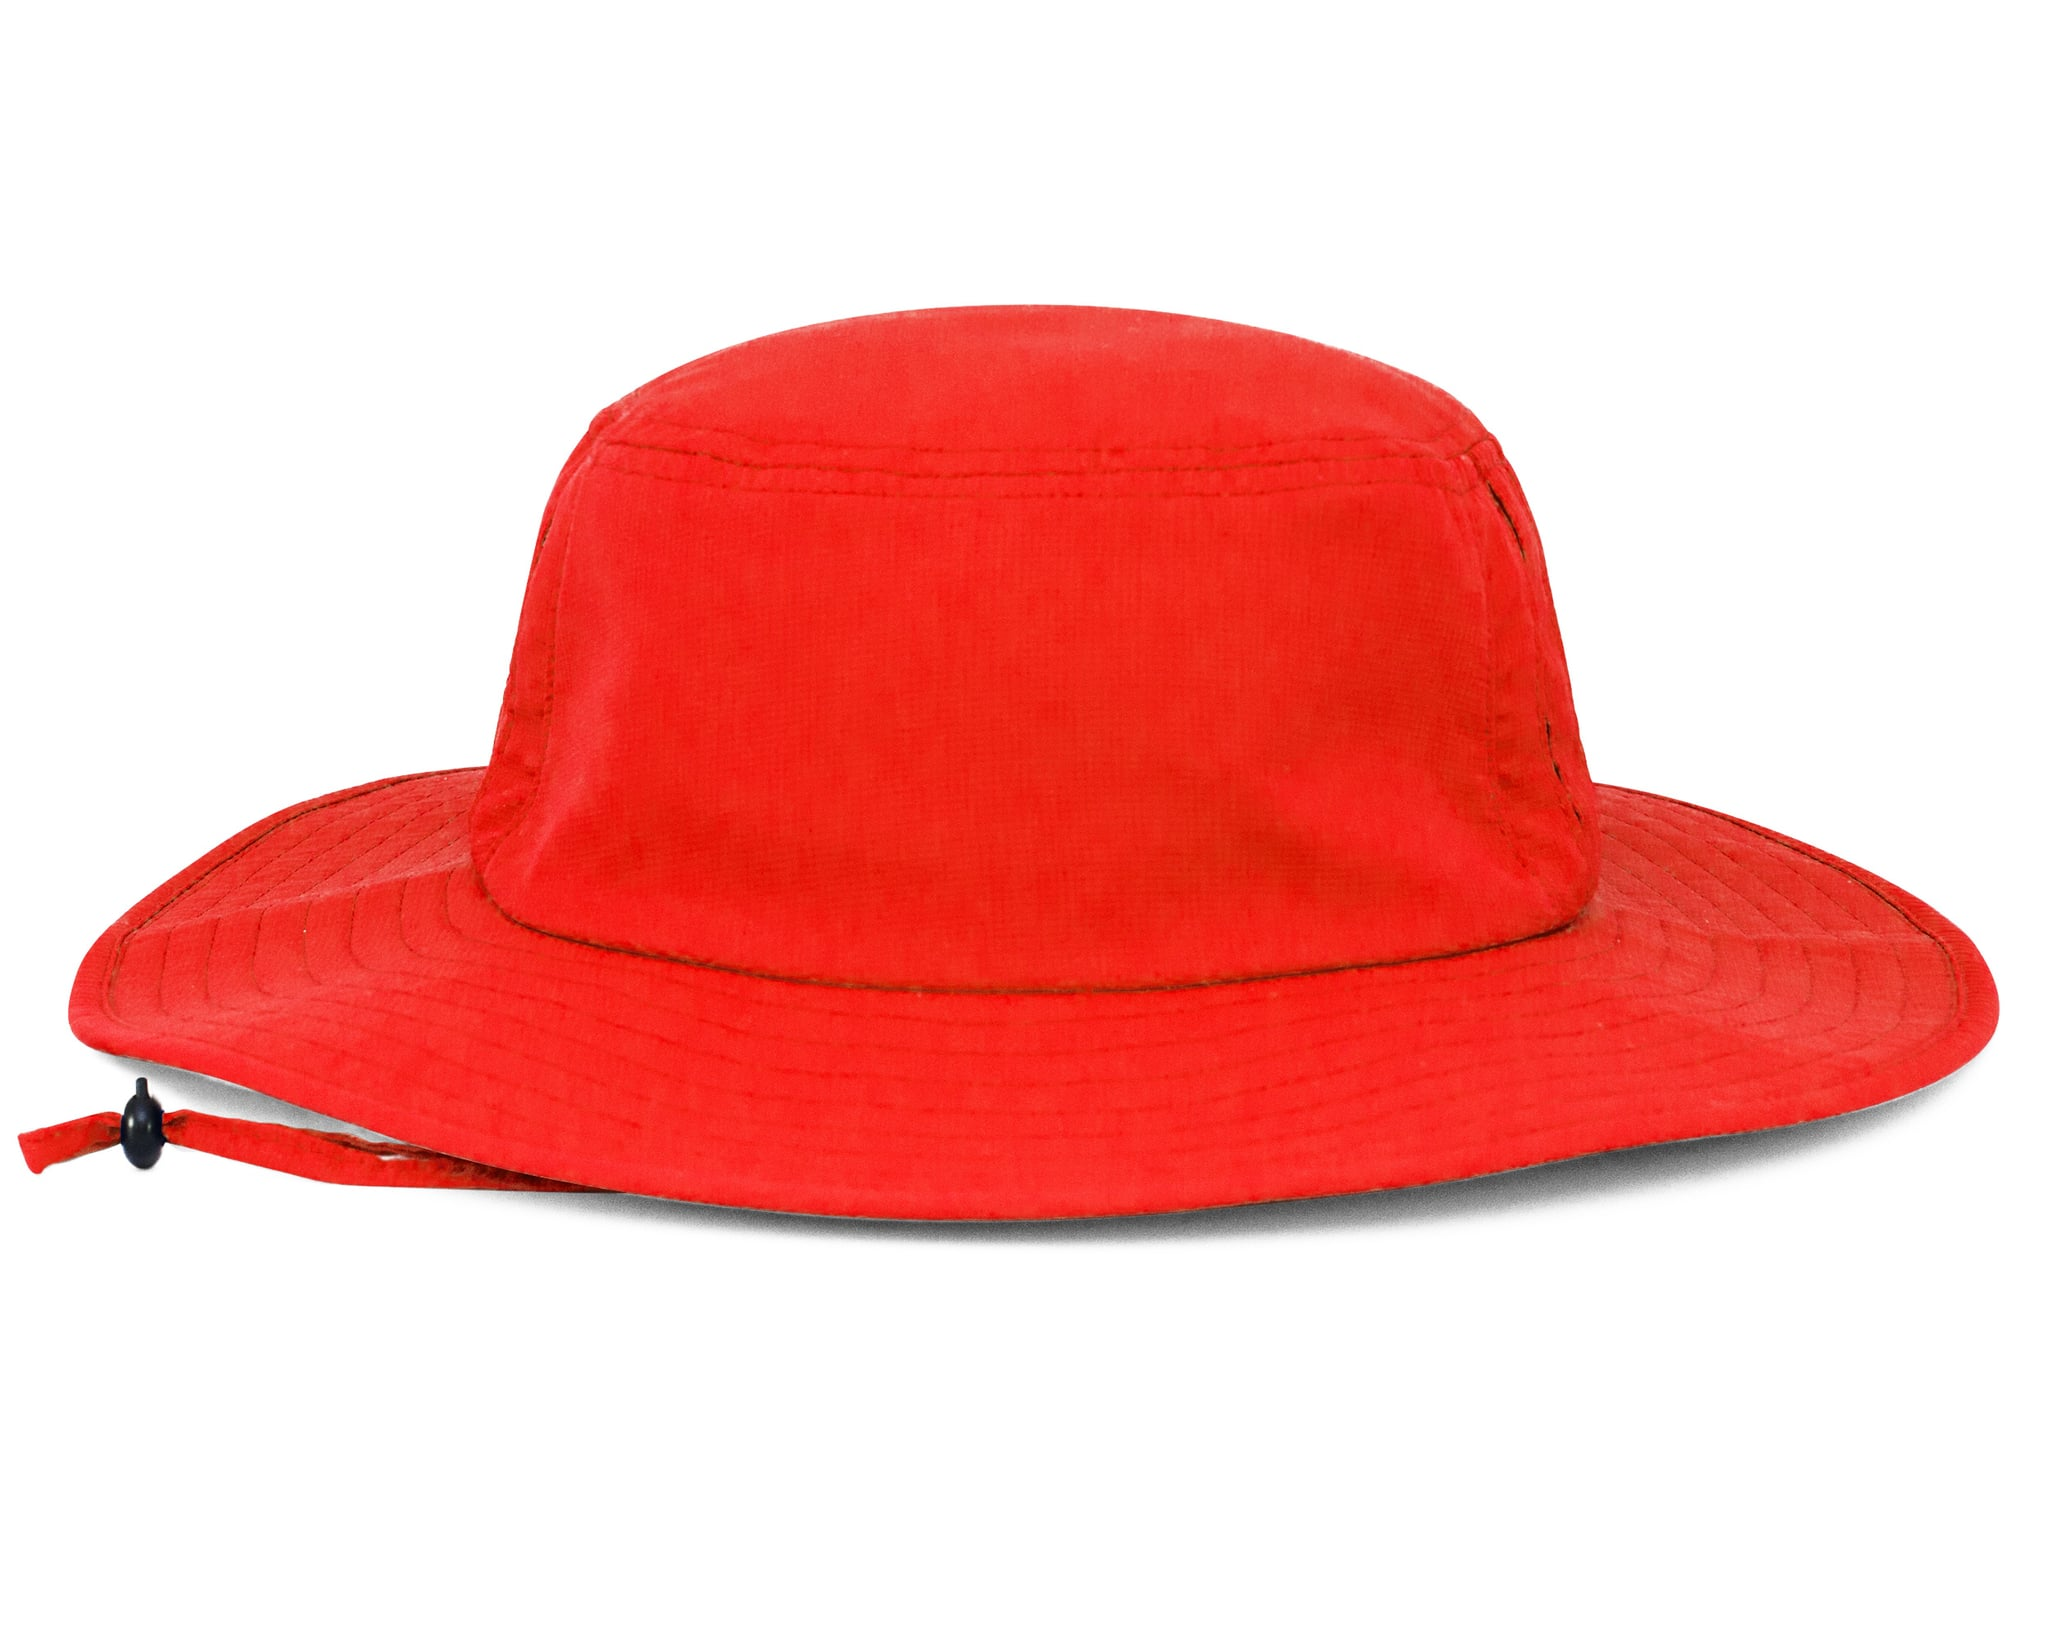 c92d3d2eae z1946-lightweight-boonie-hat-red.jpg